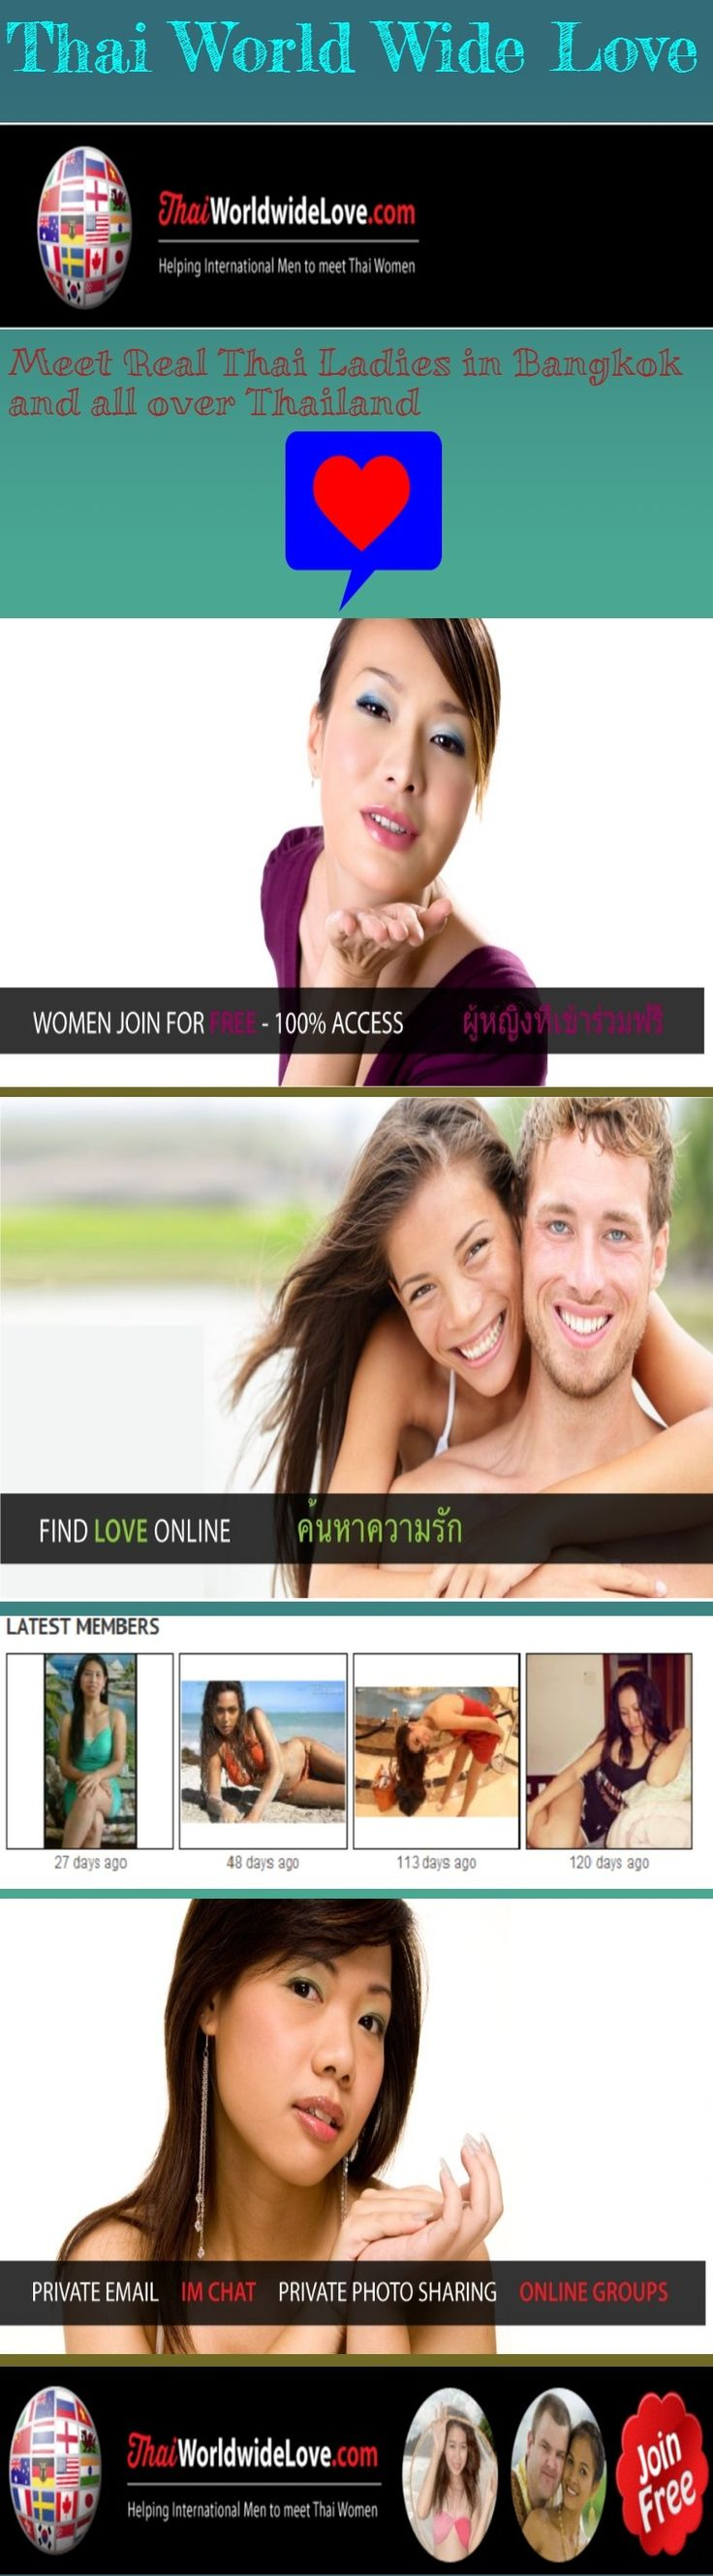 Instant chat online dating site